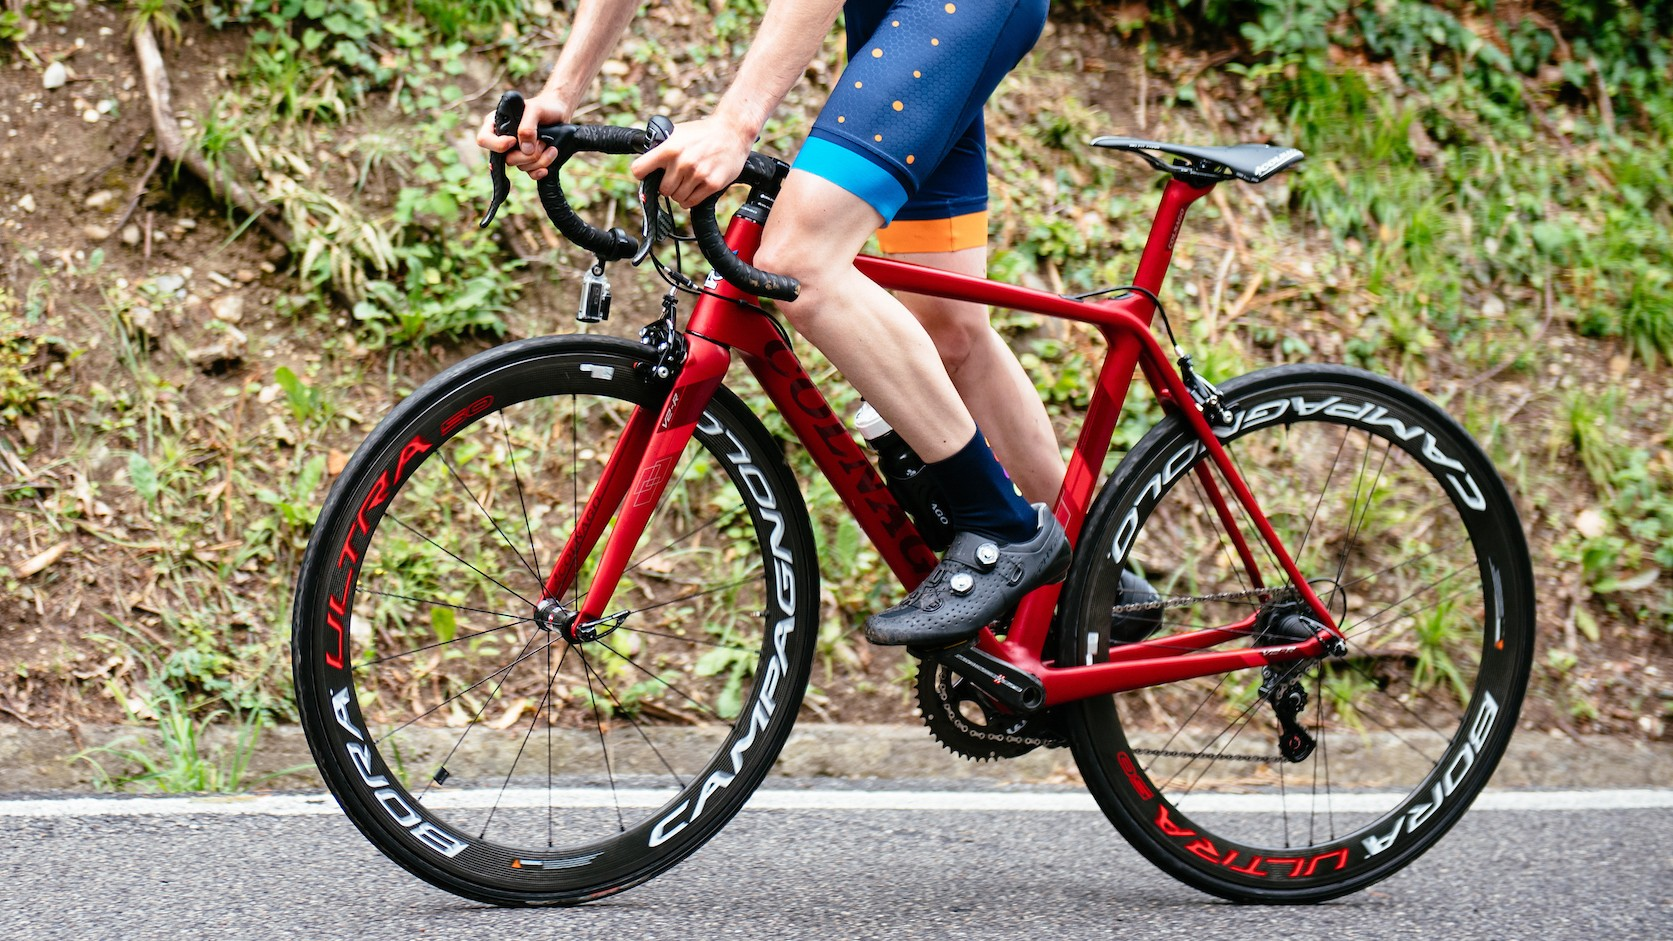 Riding a Colnago makes your muscles bulge more. Fact